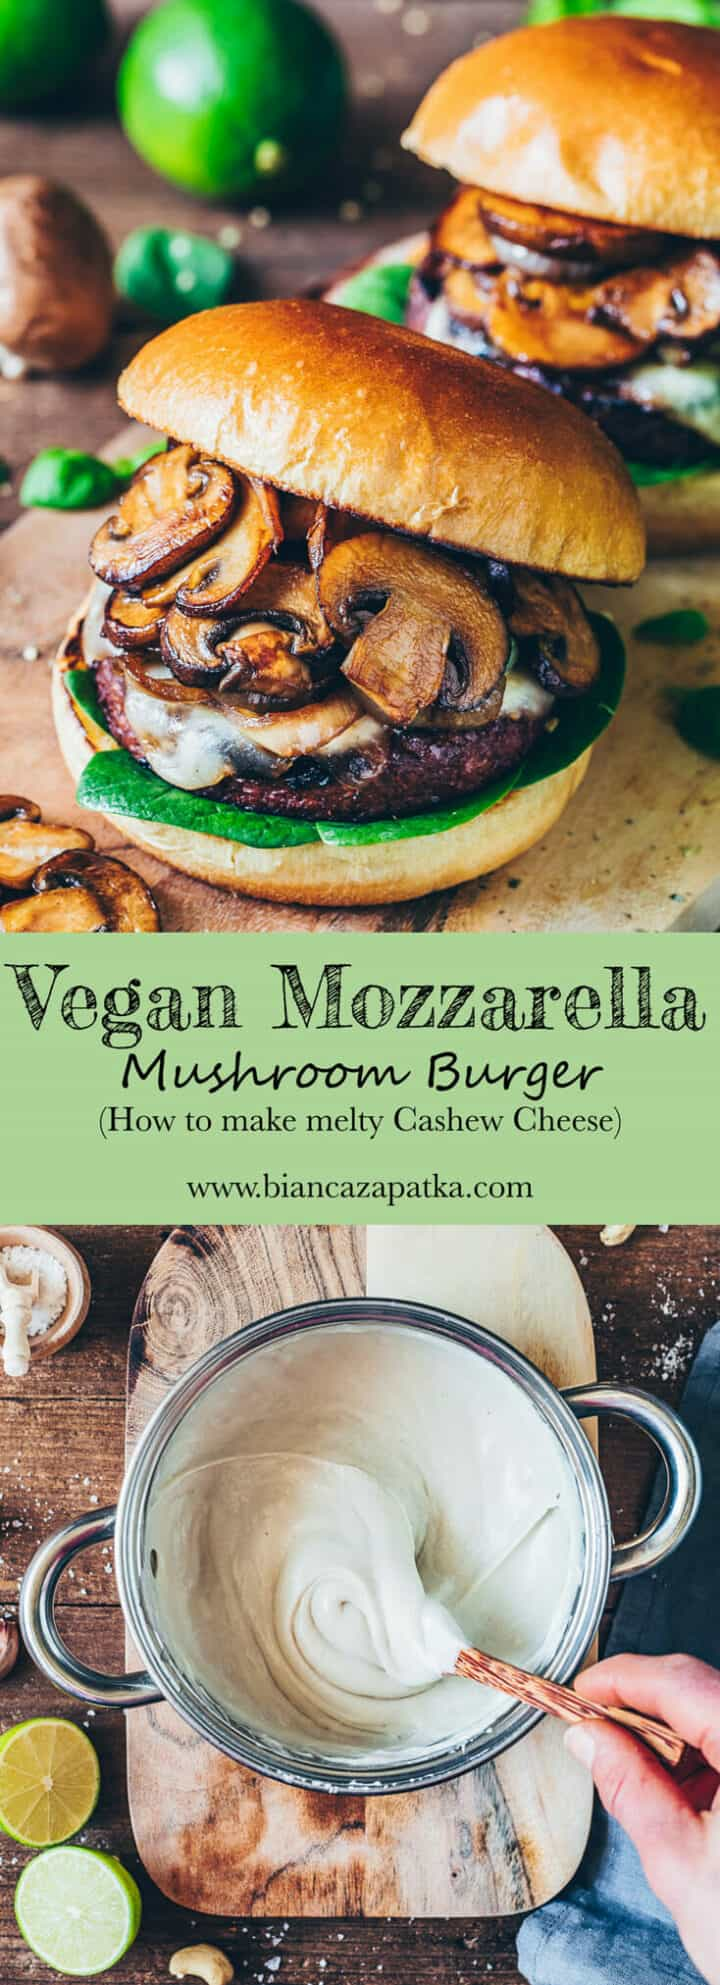 Melty Vegan Mozzarella is easy to make, perfect for gratinatingand baking casserole, pizza, sandwiches, mushroom burger. Stretchy cashew mozzarella is dairy-free cheese, gluten-free, plant-based, soy-free.